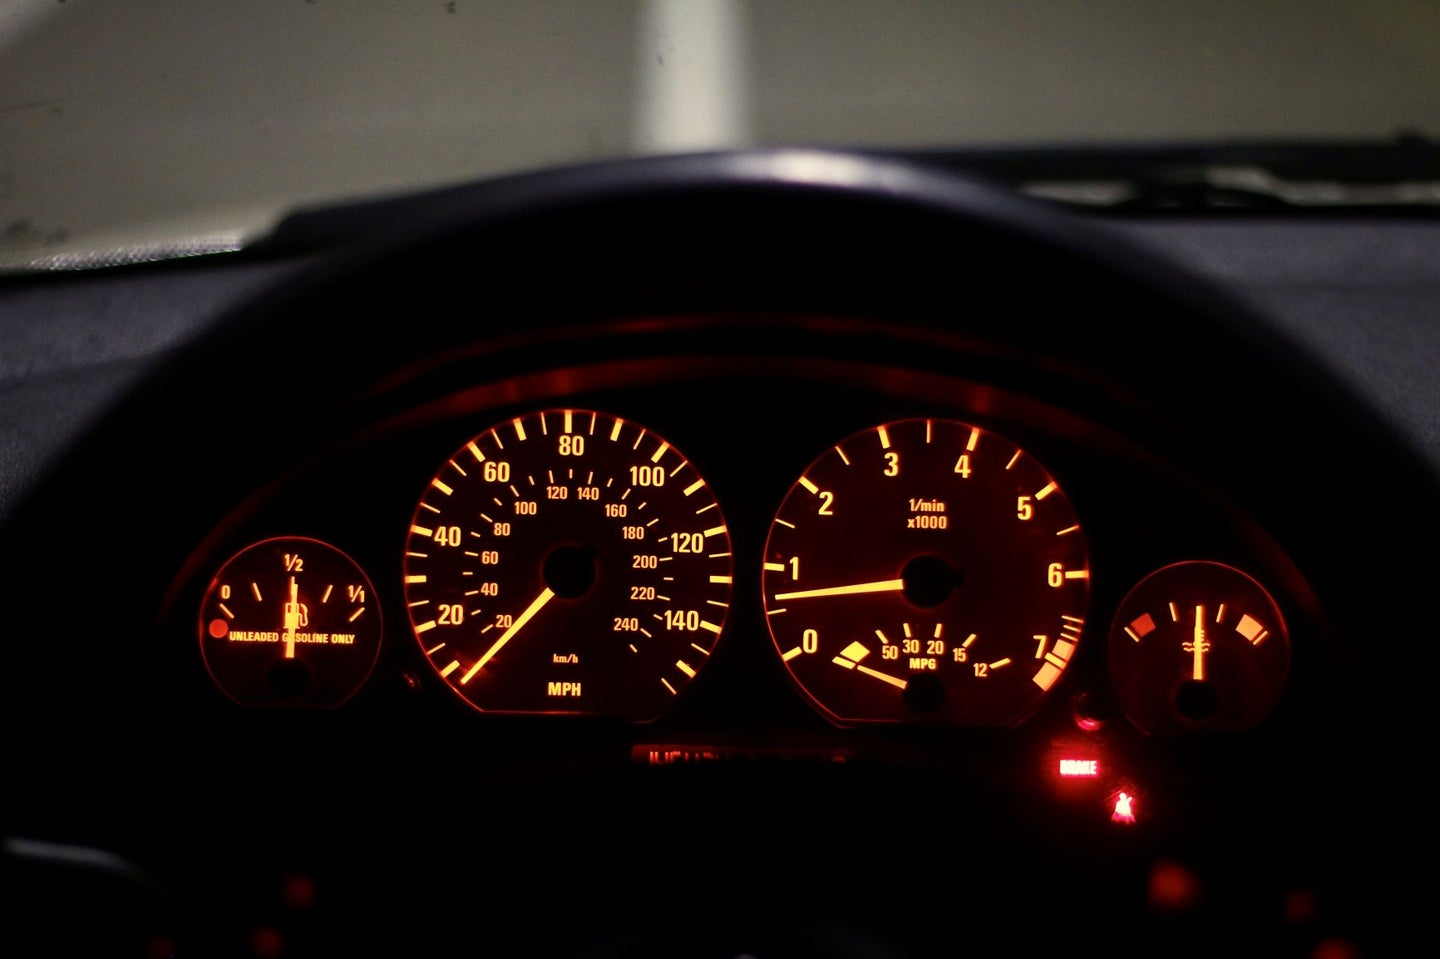 We're Really Going to Miss Analog Gauges